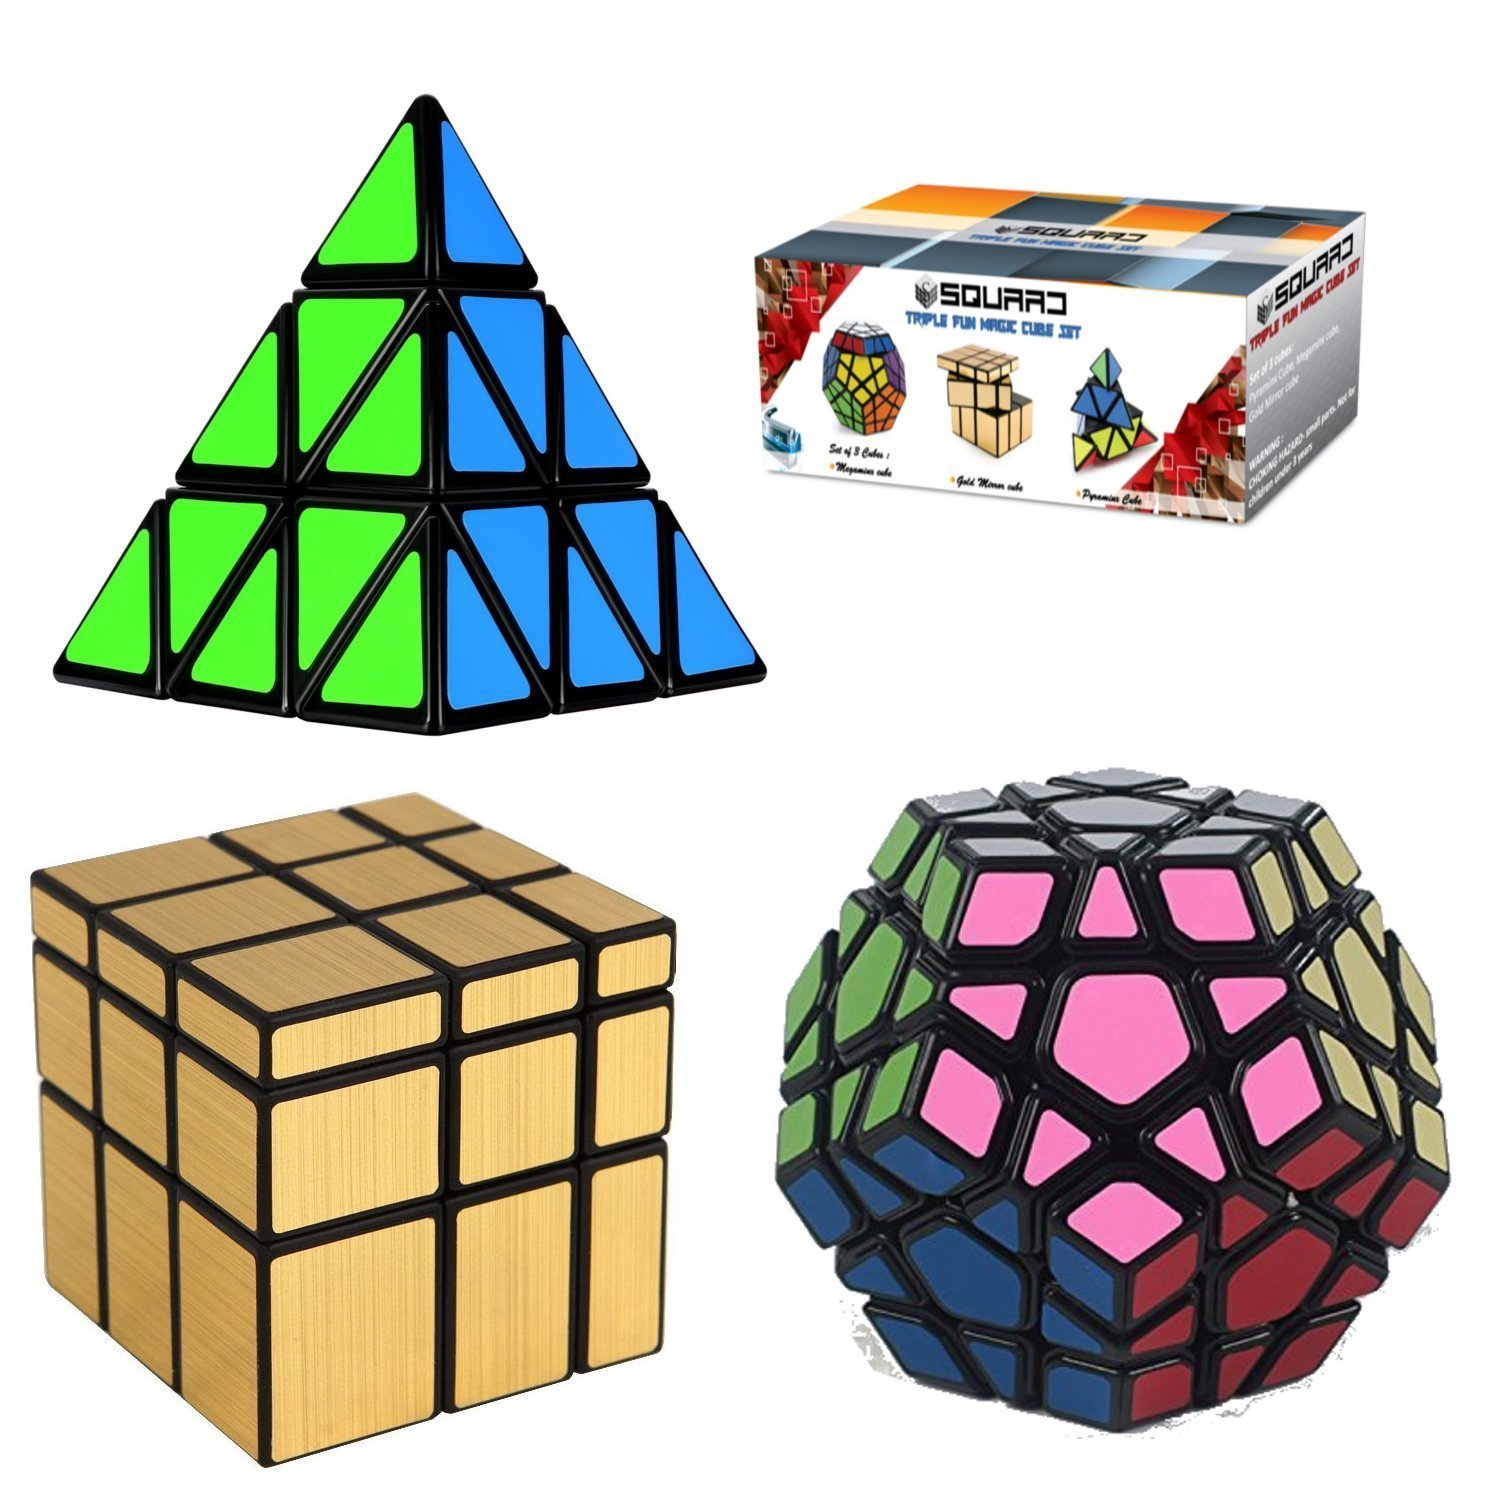 Squaad Magic Cube Set of 3 Popular Cubes bundles- Pyraminx Pyramid 3-d Puzzle cube, Megaminx Cube and Gold Mirror Cube , Black, Great Entertainment For Adults and Kids Kirpa creation